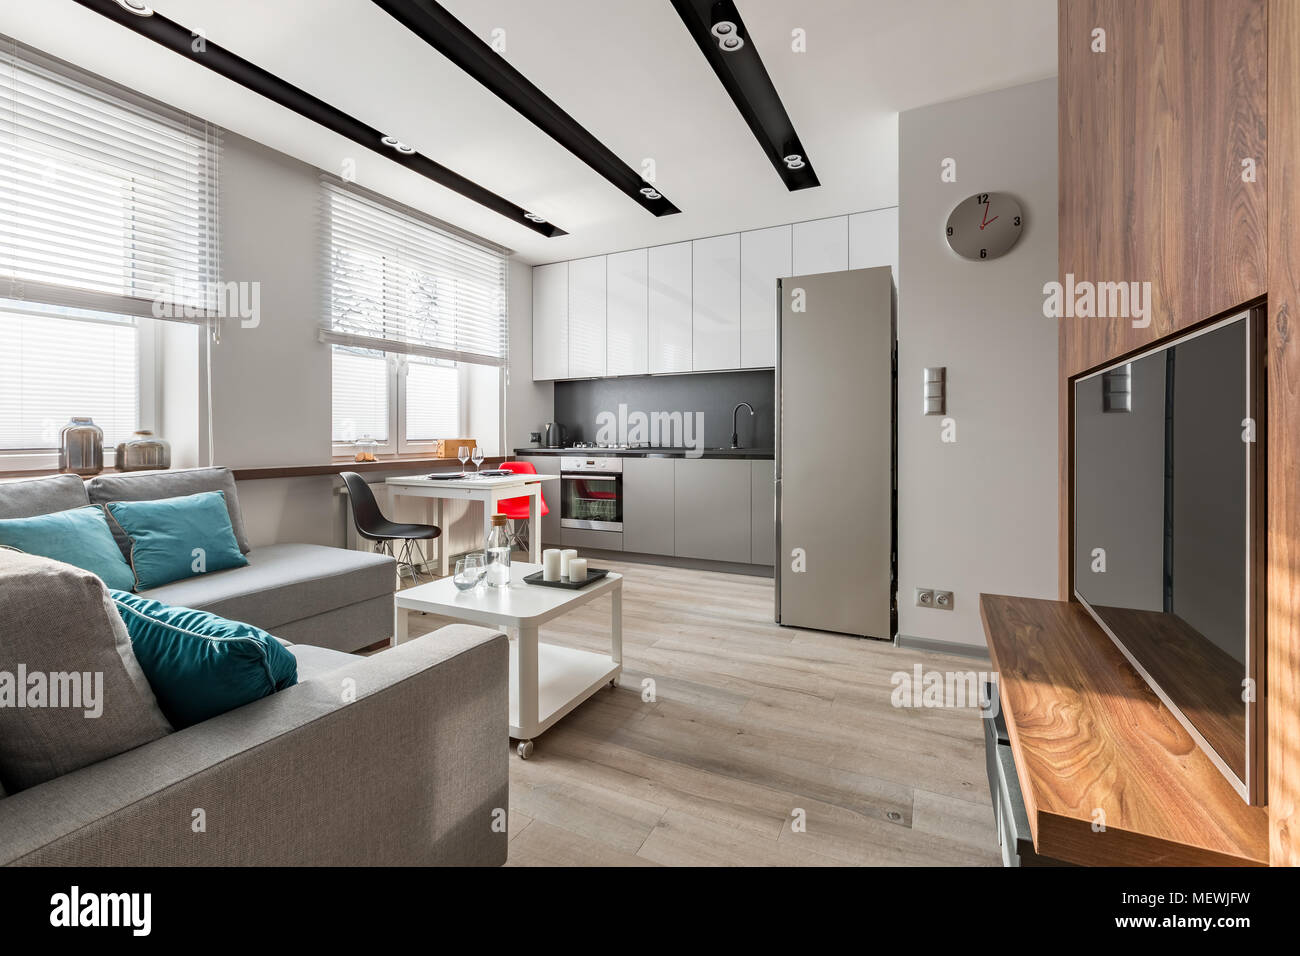 Contemporary Home Interior With Tv Living Room And Open Kitchen Stock Photo Alamy